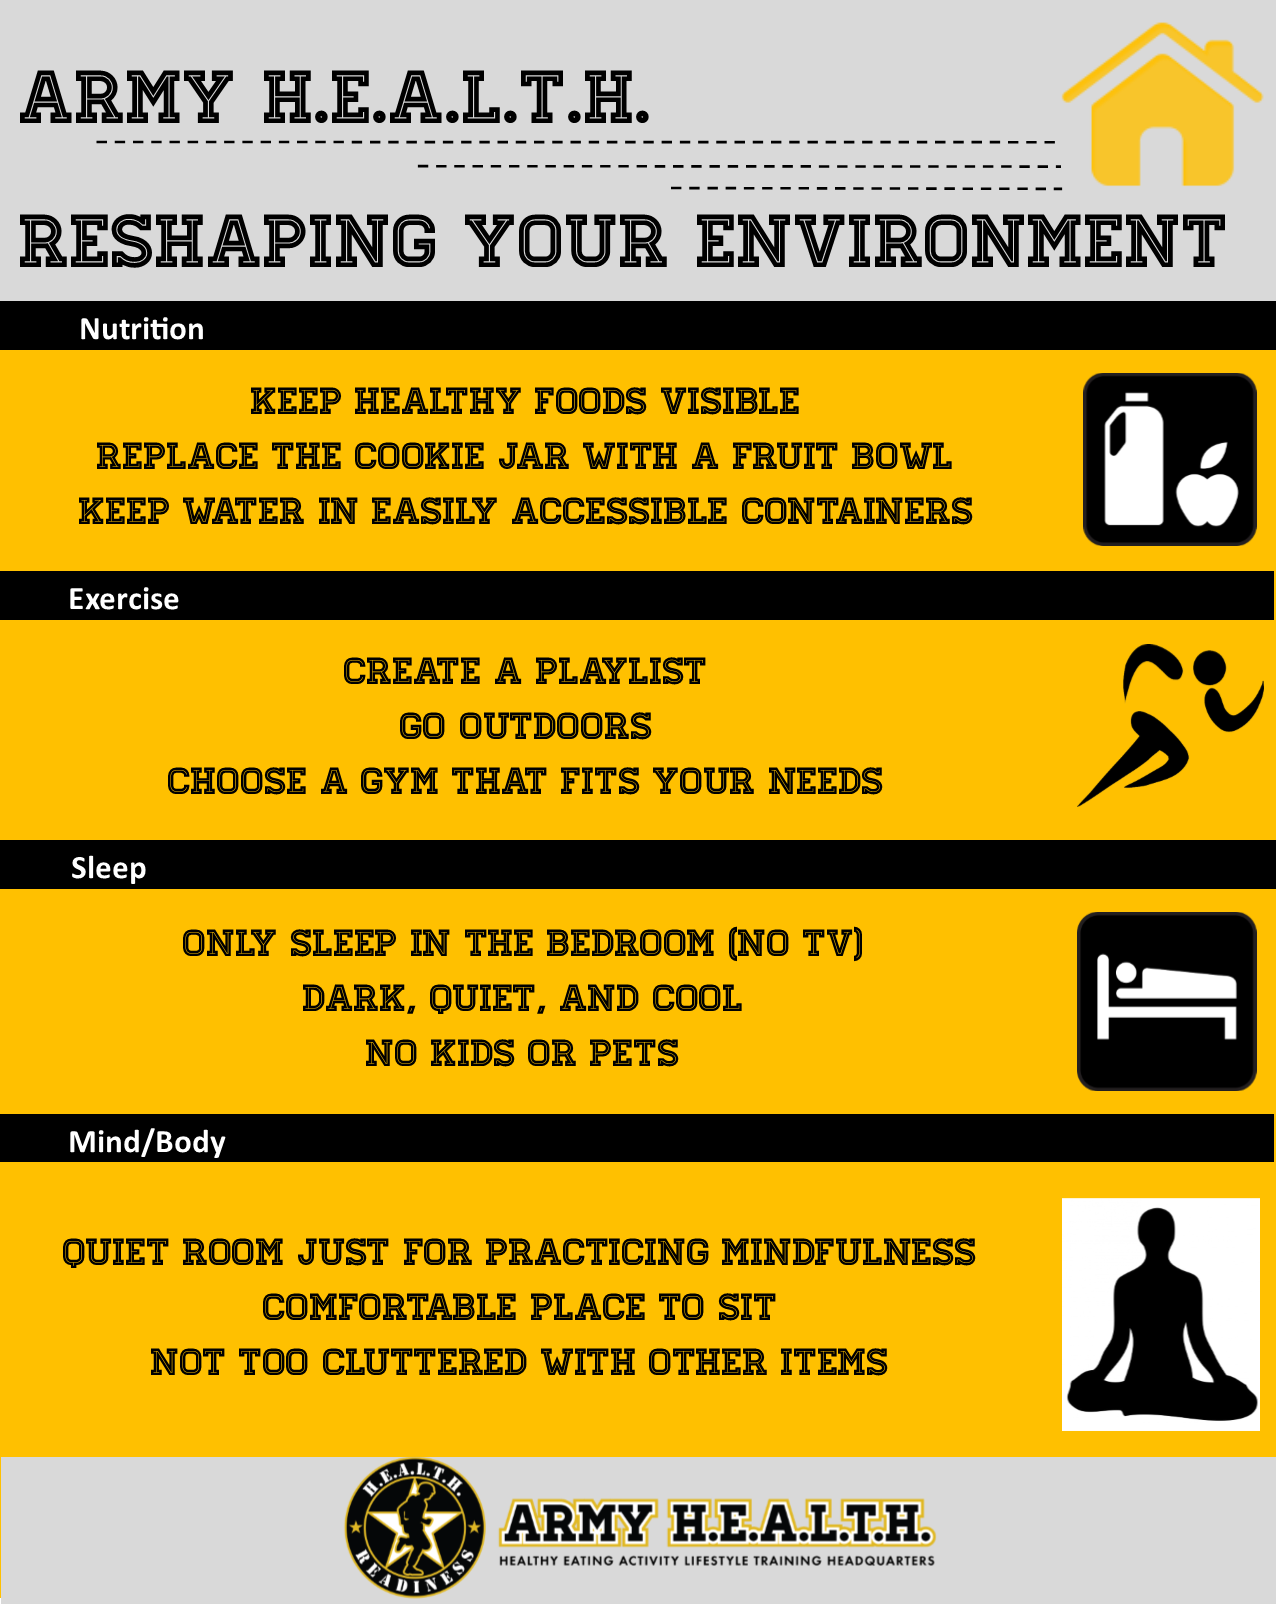 Reshaping Your Environment: Get the most out of your space